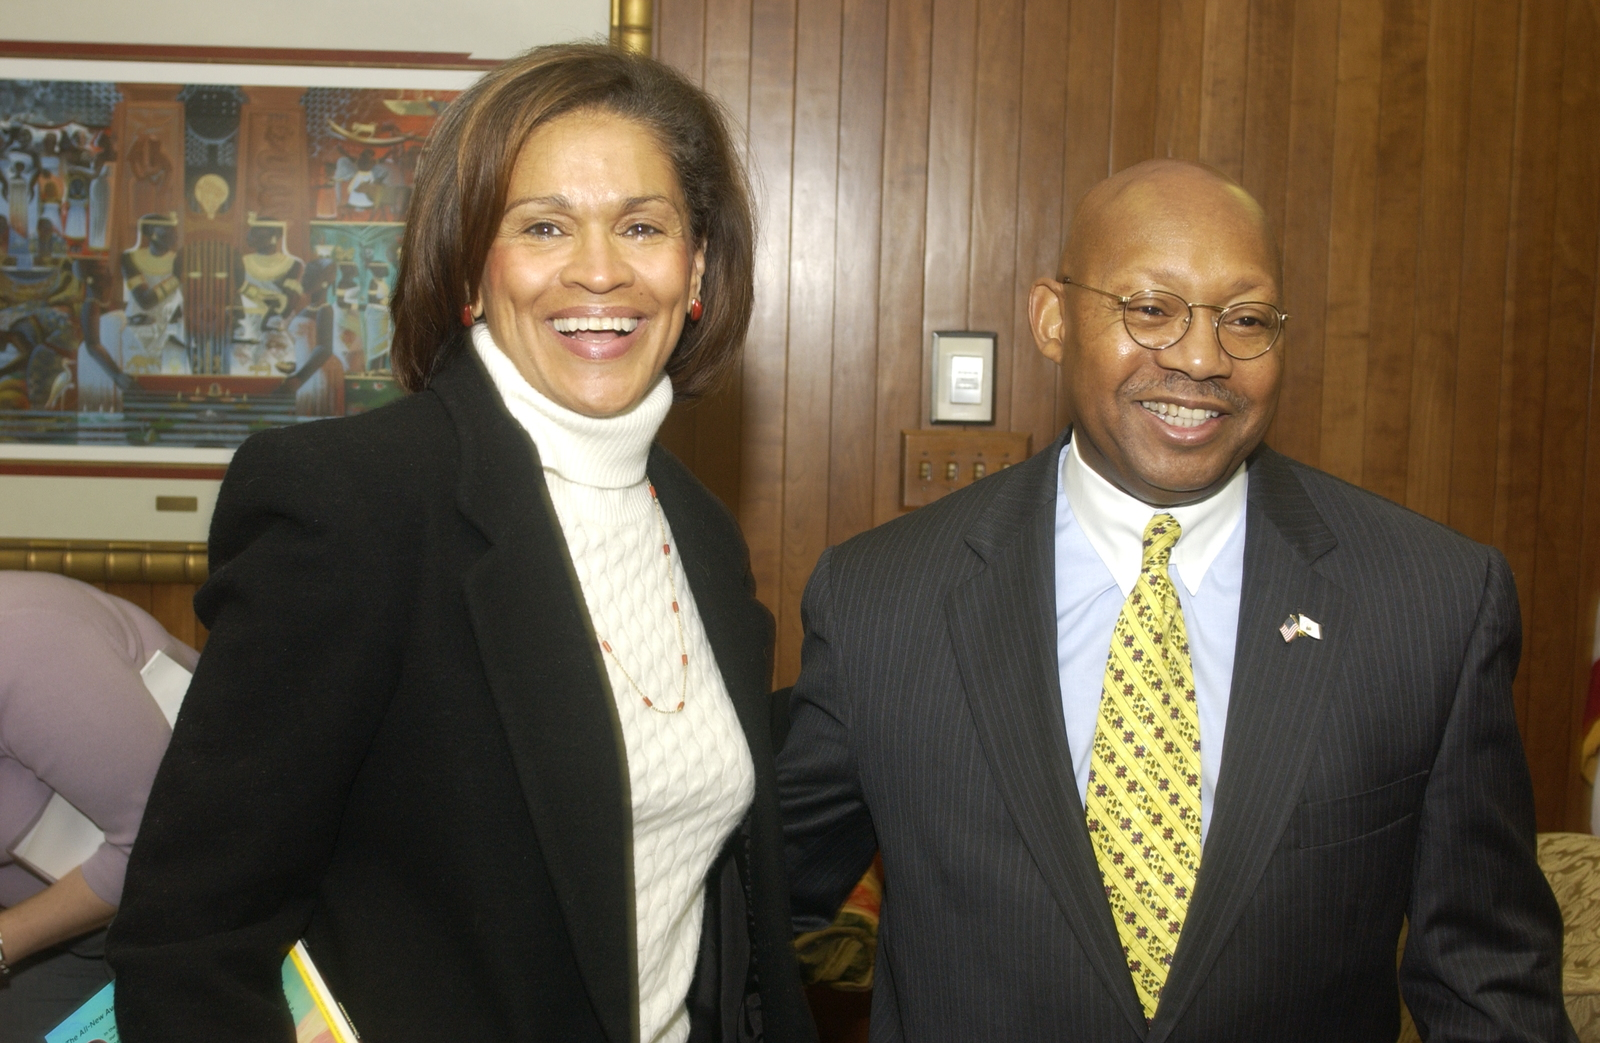 Secretary Alphonso Jackson with Gail Melissa Grant - Secretary Alphonso Jackson meeting at HUD Headquarters with Gail Milissa Grant, [author and former Department of State and U.S. Information Agency cultural and public affairs attache]